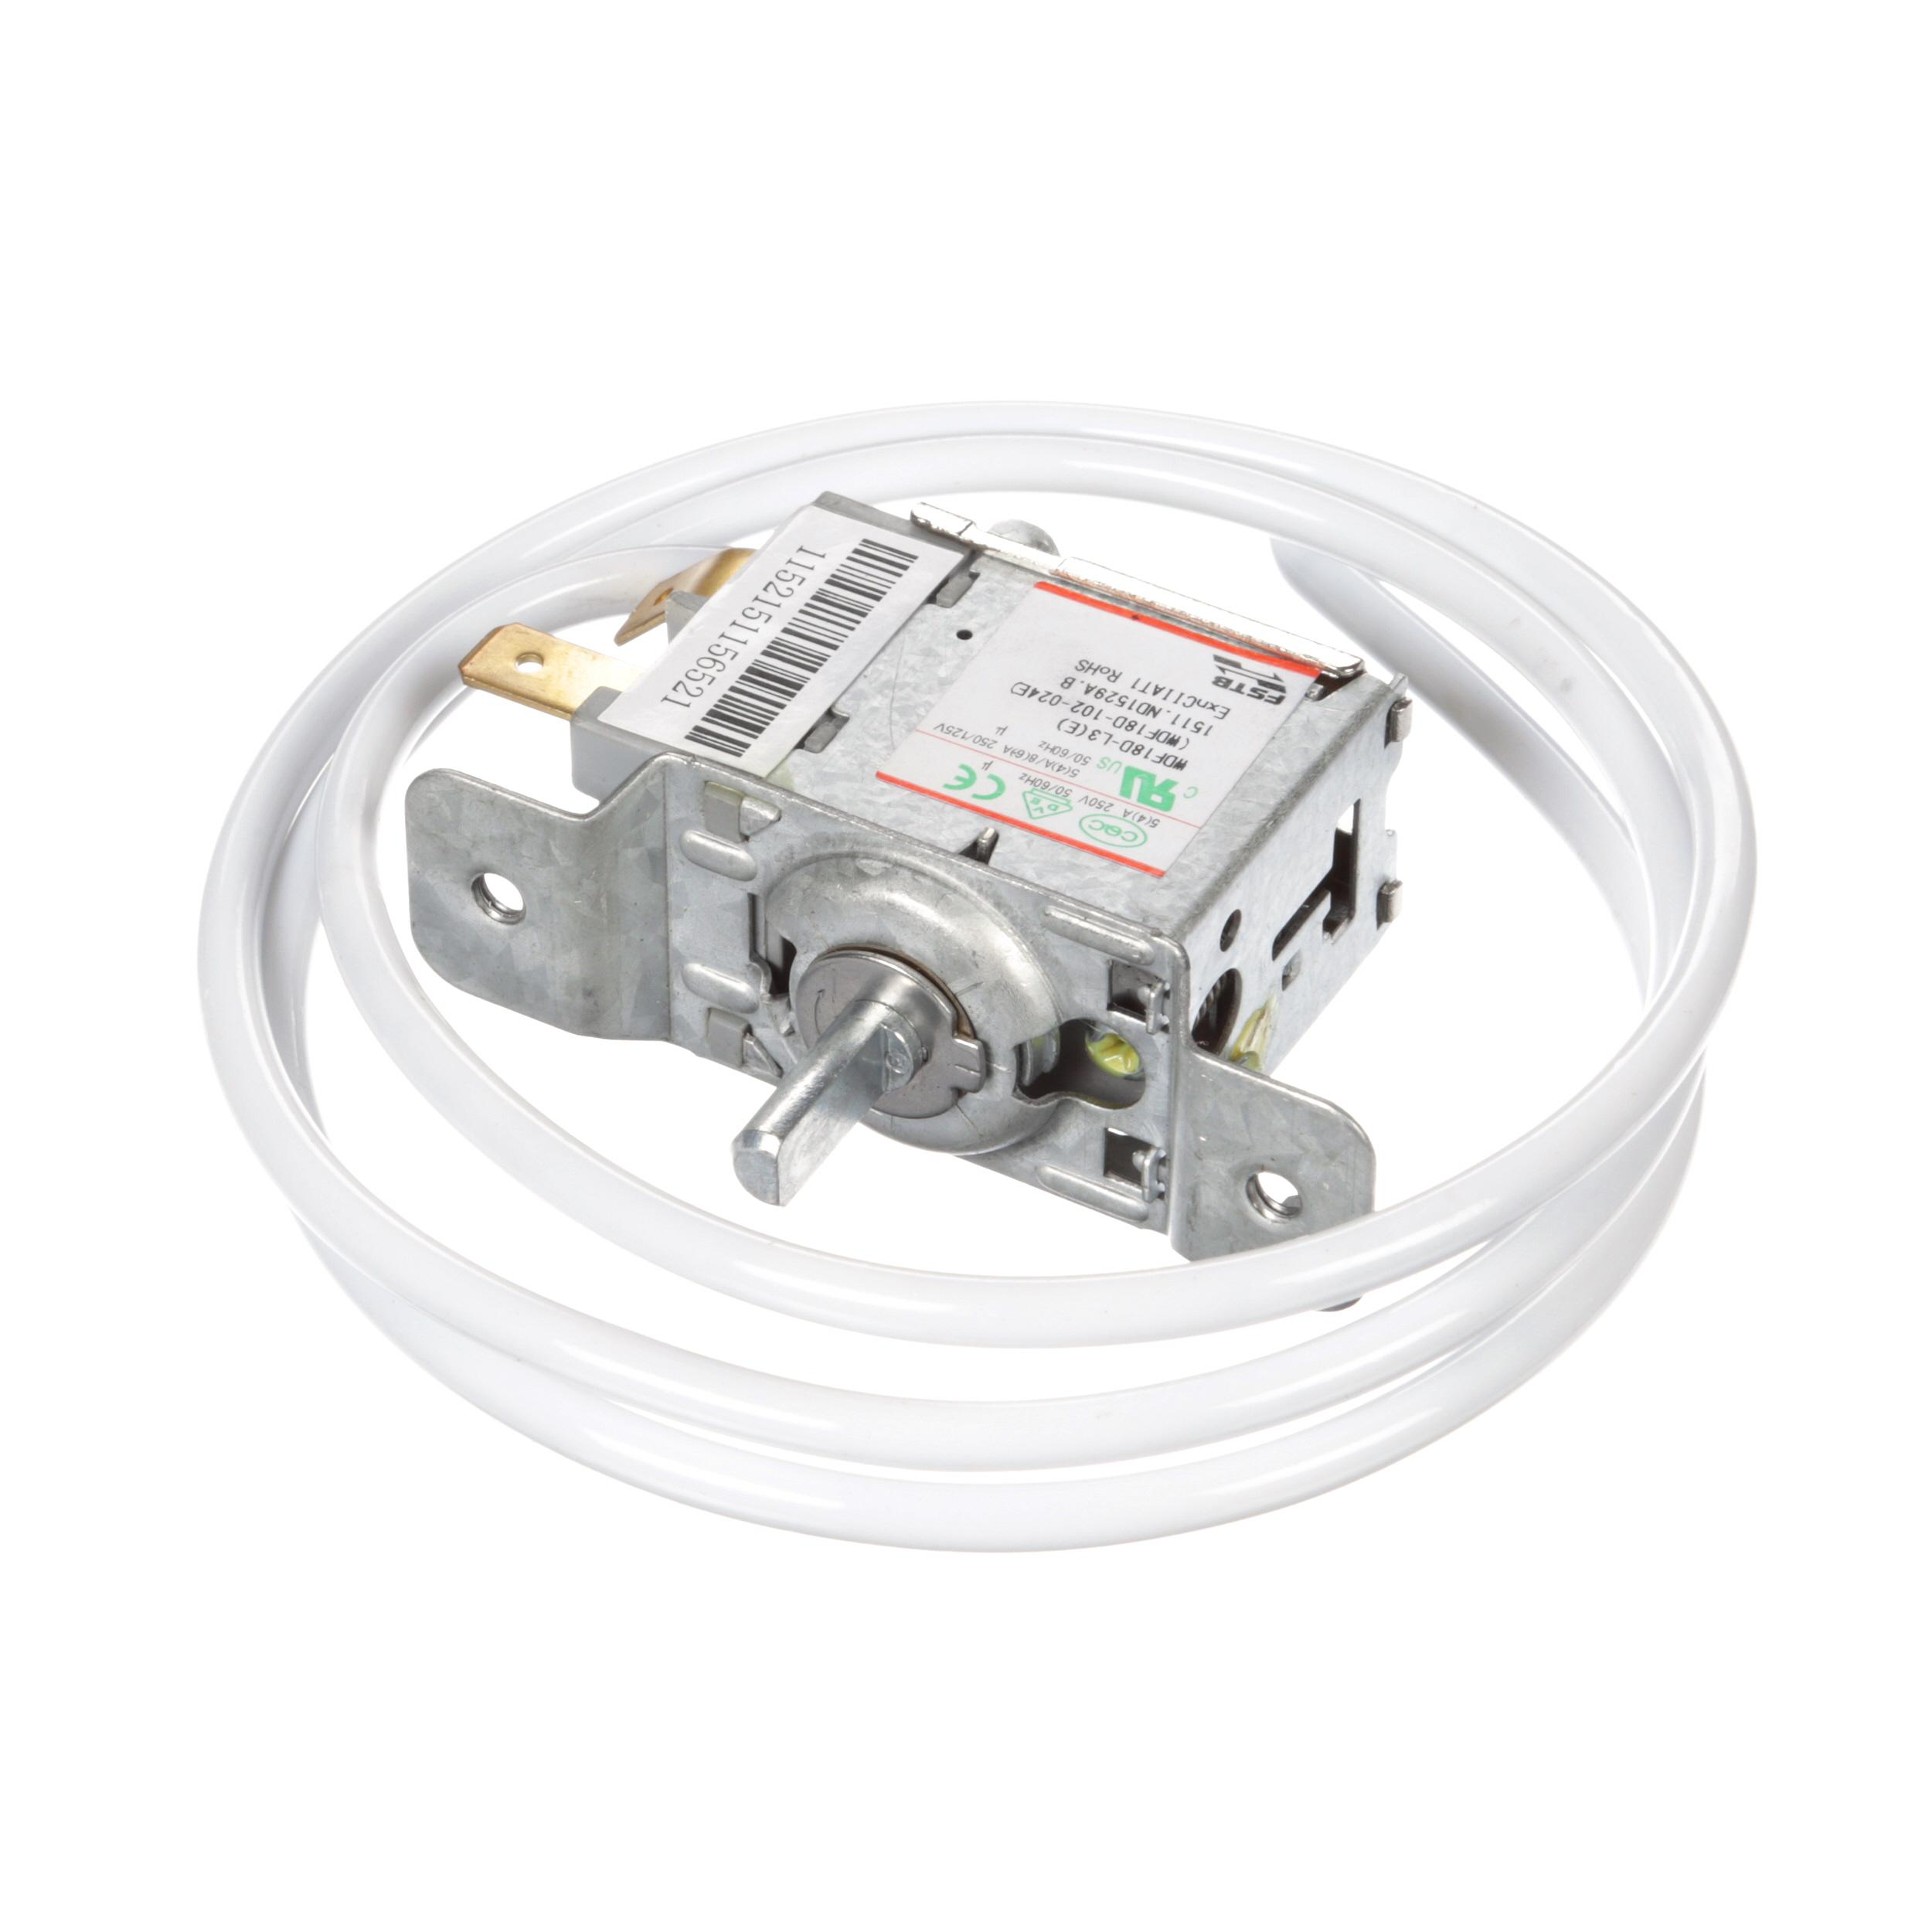 DANBY THERMOSTAT